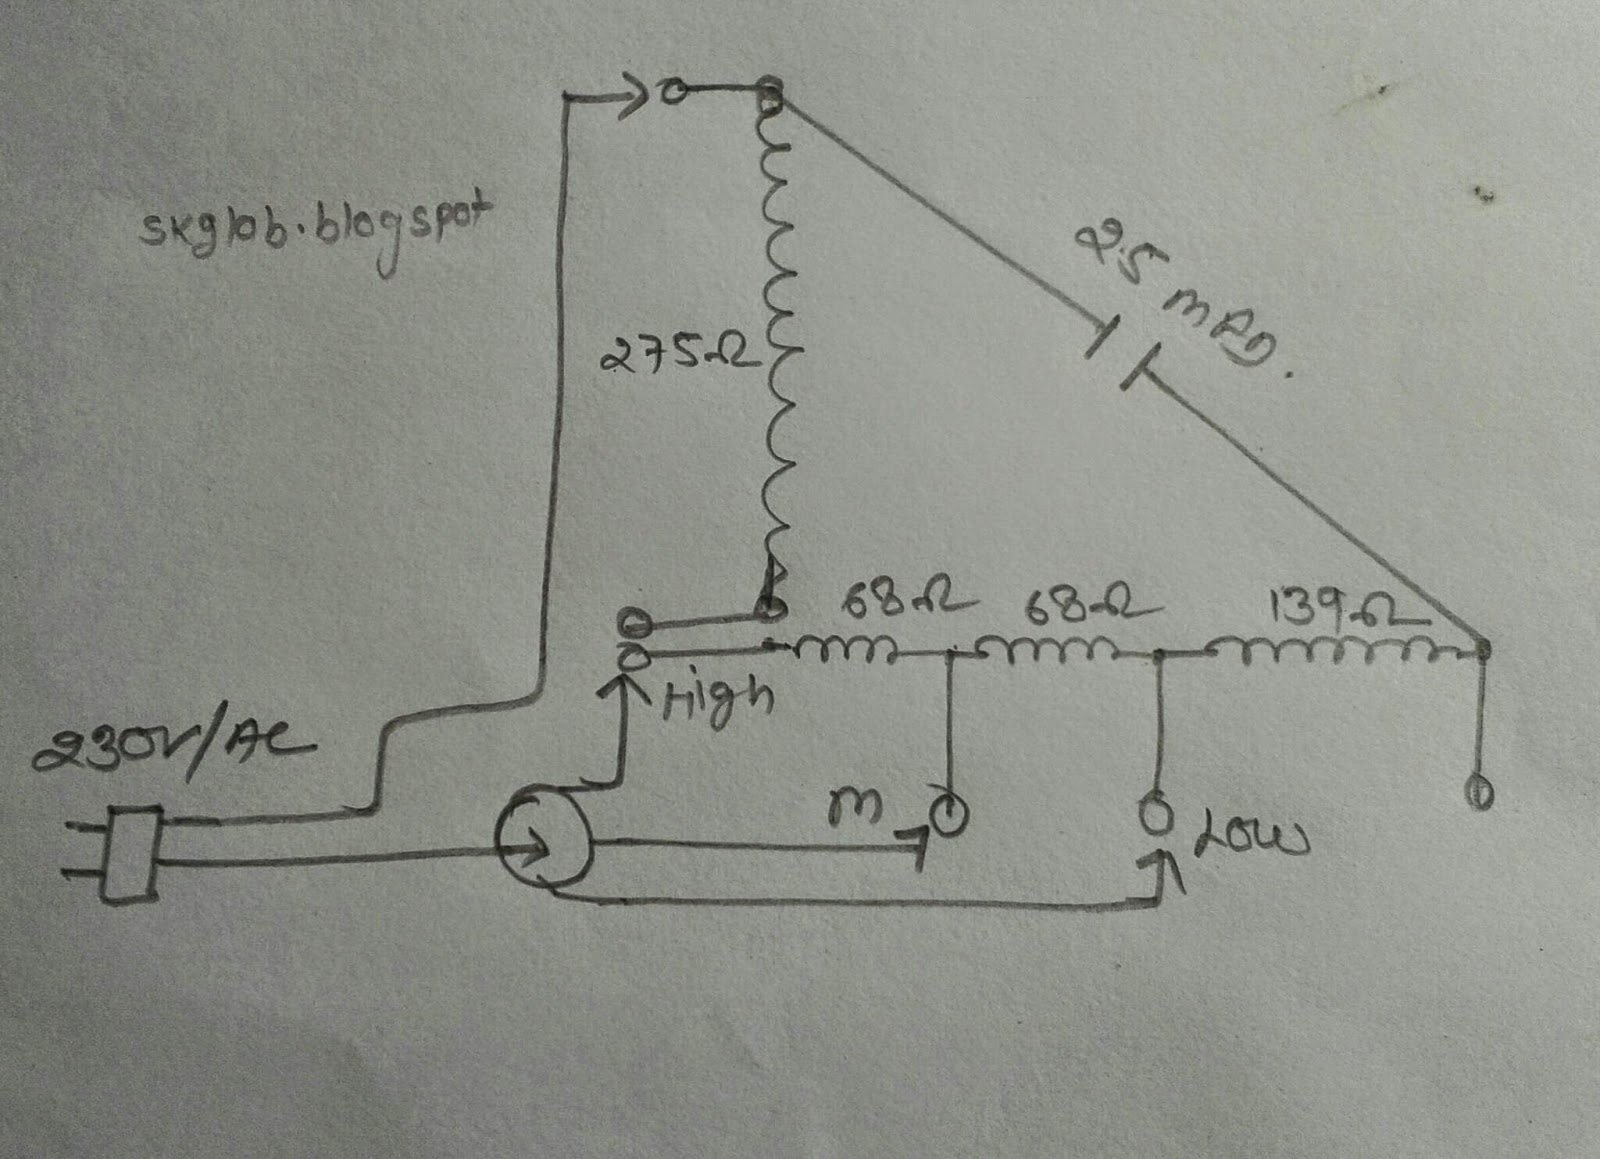 Orient table fan wiring diagram somurich khaitan ceiling fan capacitor connection 594 orient table fan wiring diagram greentooth Choice Image